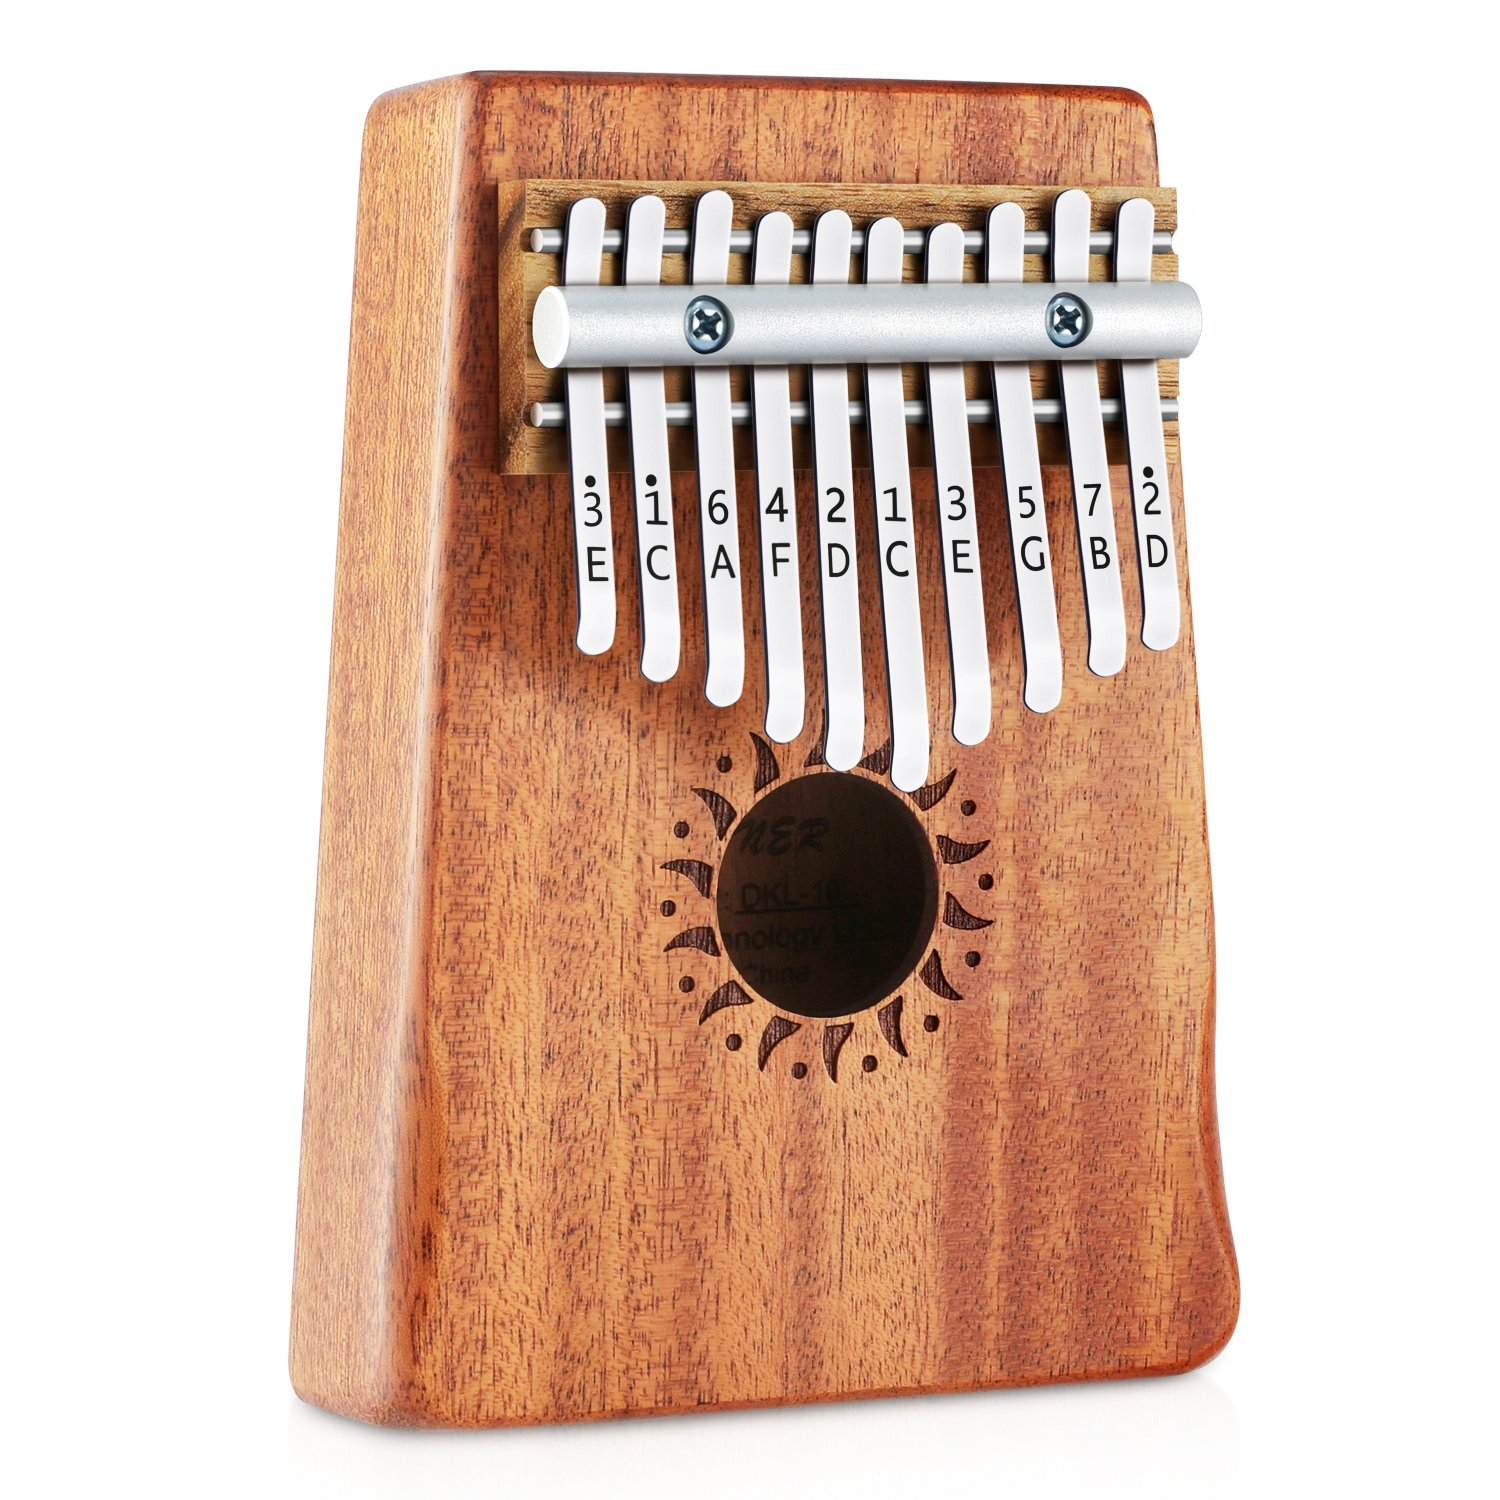 Donner 10 Key Kalimba Thumb Piano Solid Finger Piano Mahogany Body DKL-10 by Donner (Image #2)